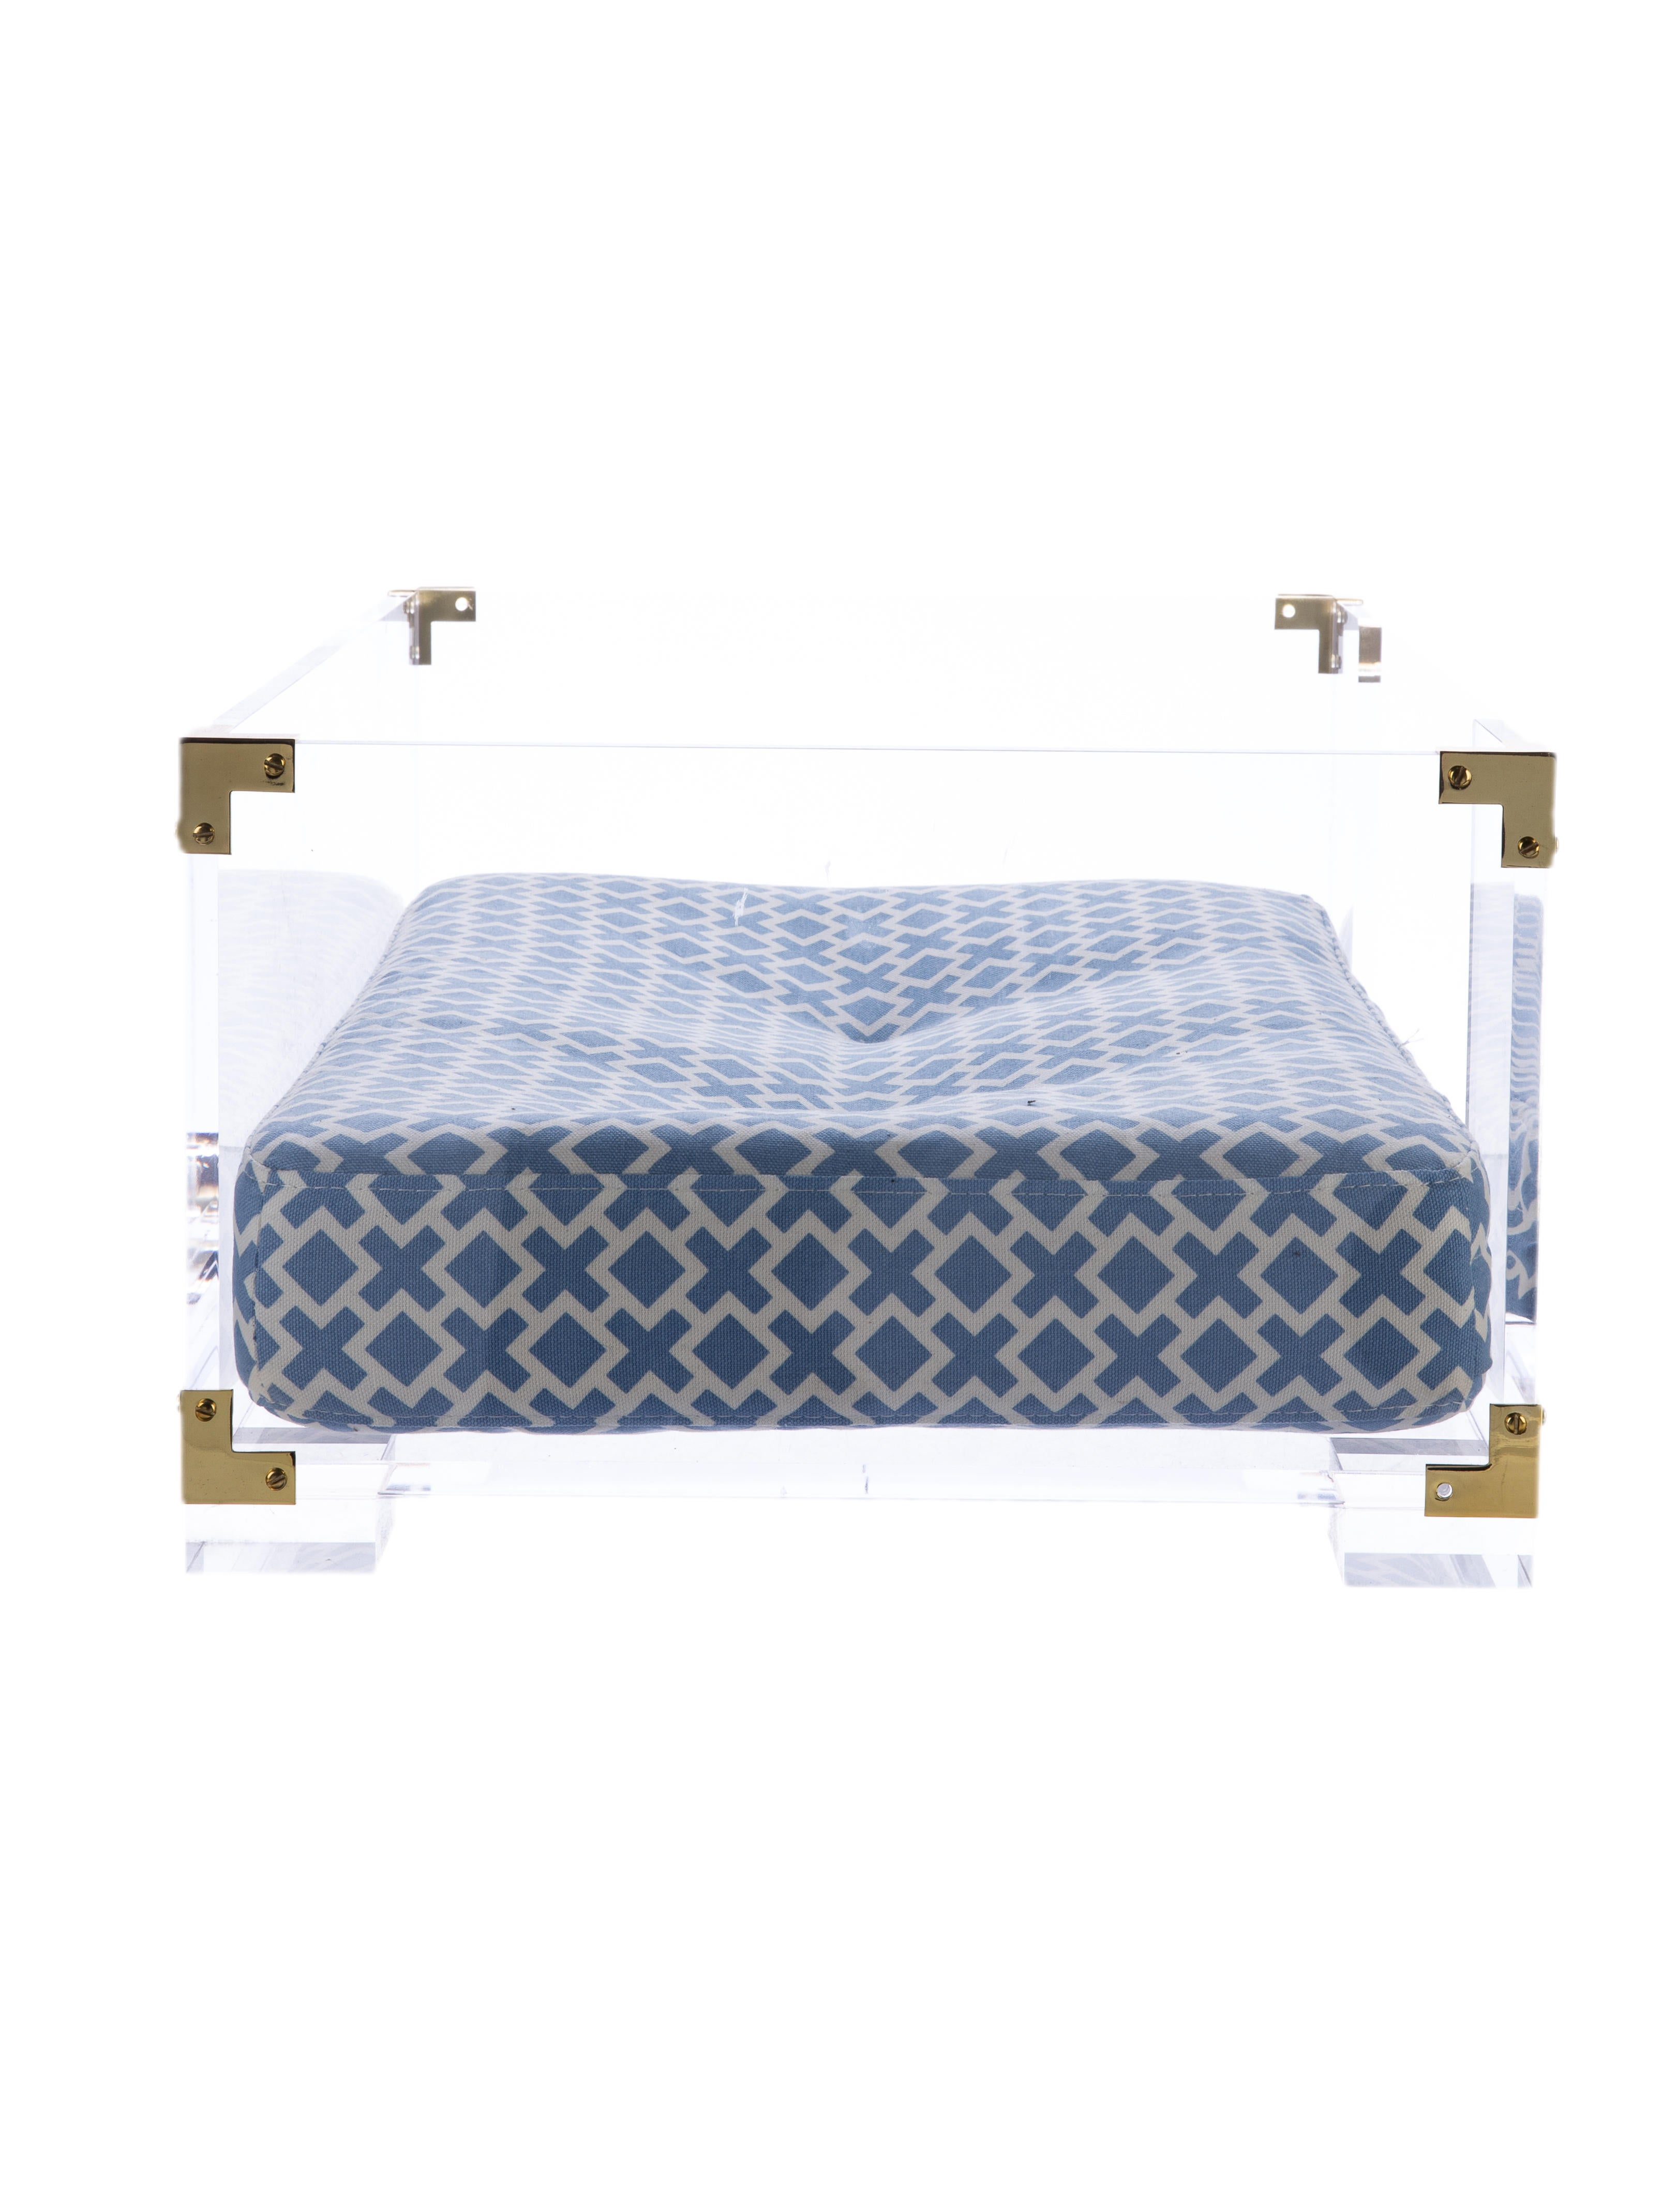 jonathan adler lucite dog bed decor and accessories